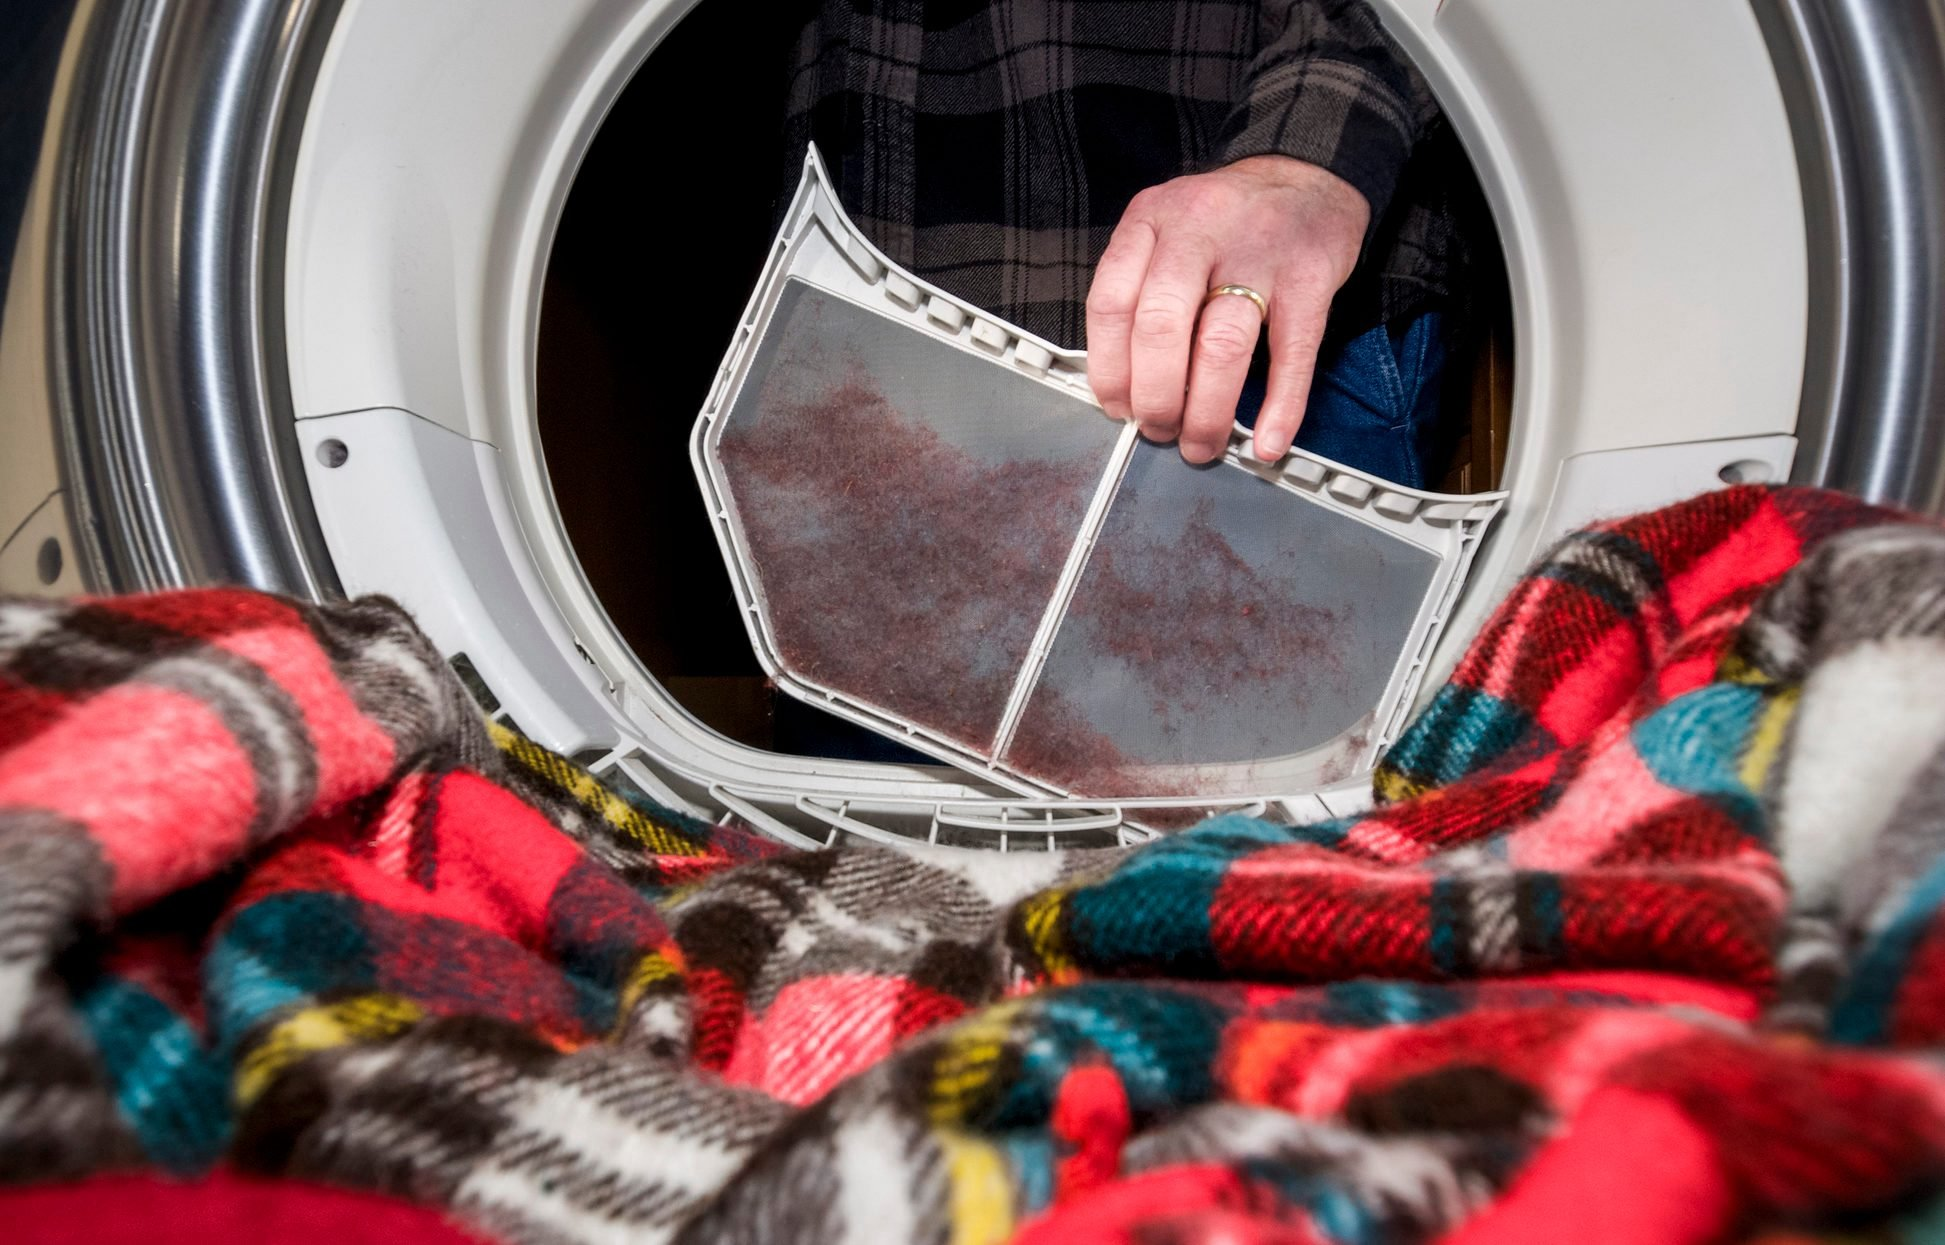 Clothes Dryer from Inside Lint Trap Lifted to Clean Close-up